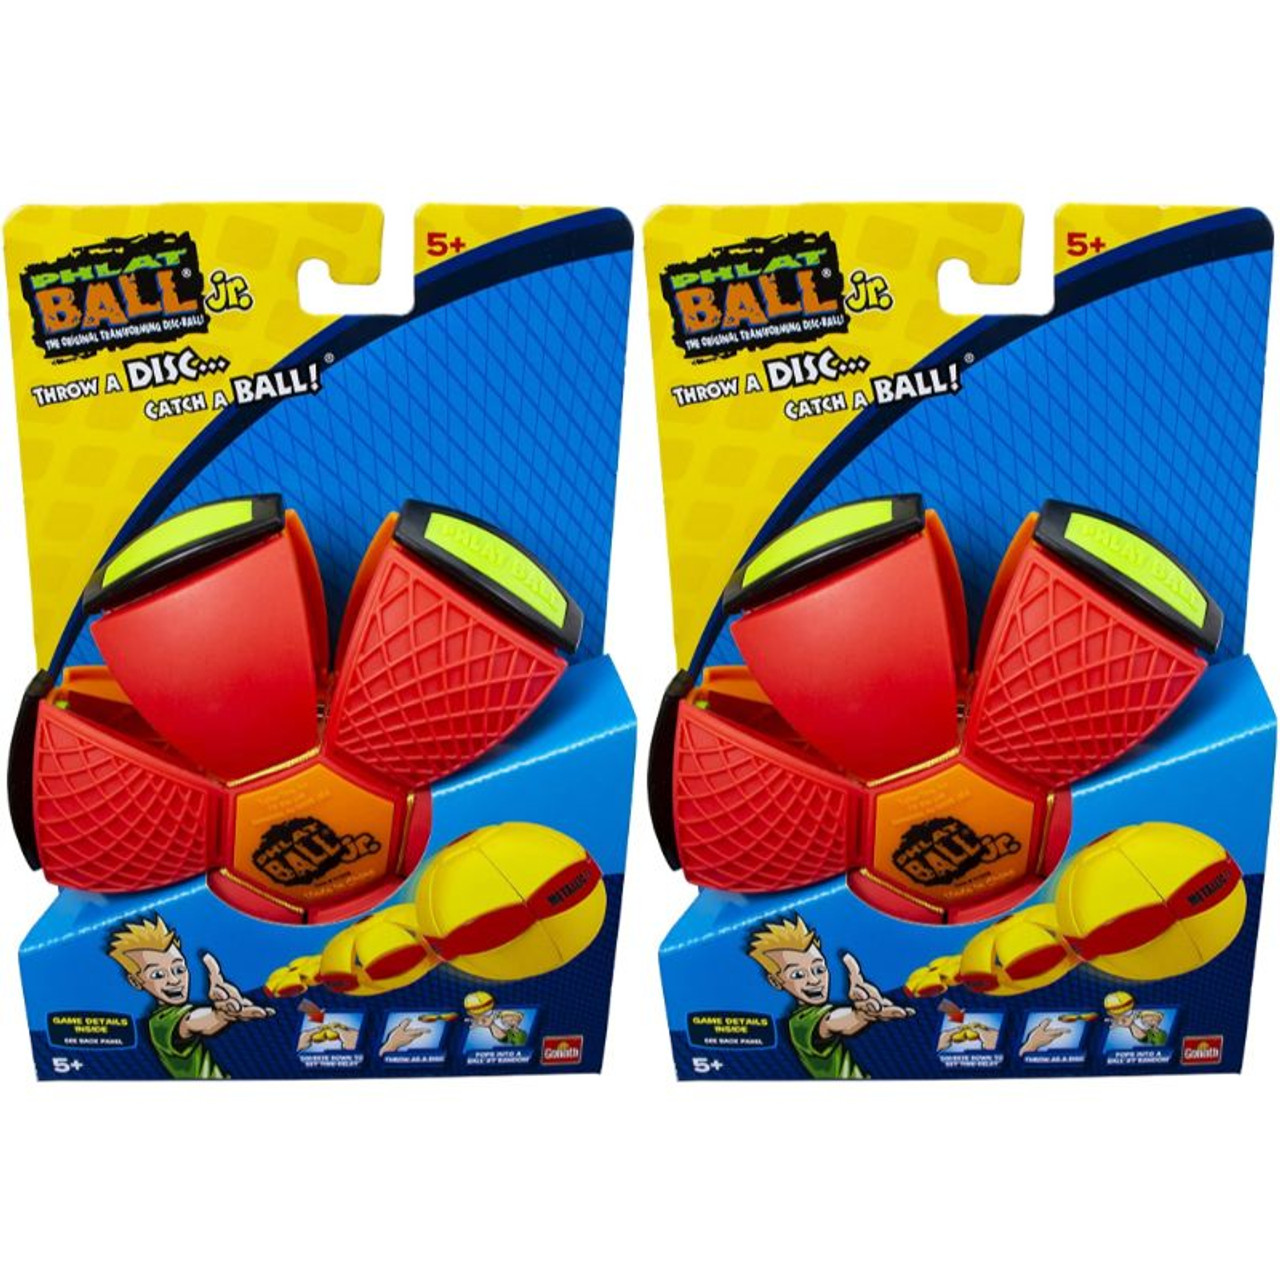 Goliath Sports Phlat Ball Jr Orange or Red - 1 or 2 Pack